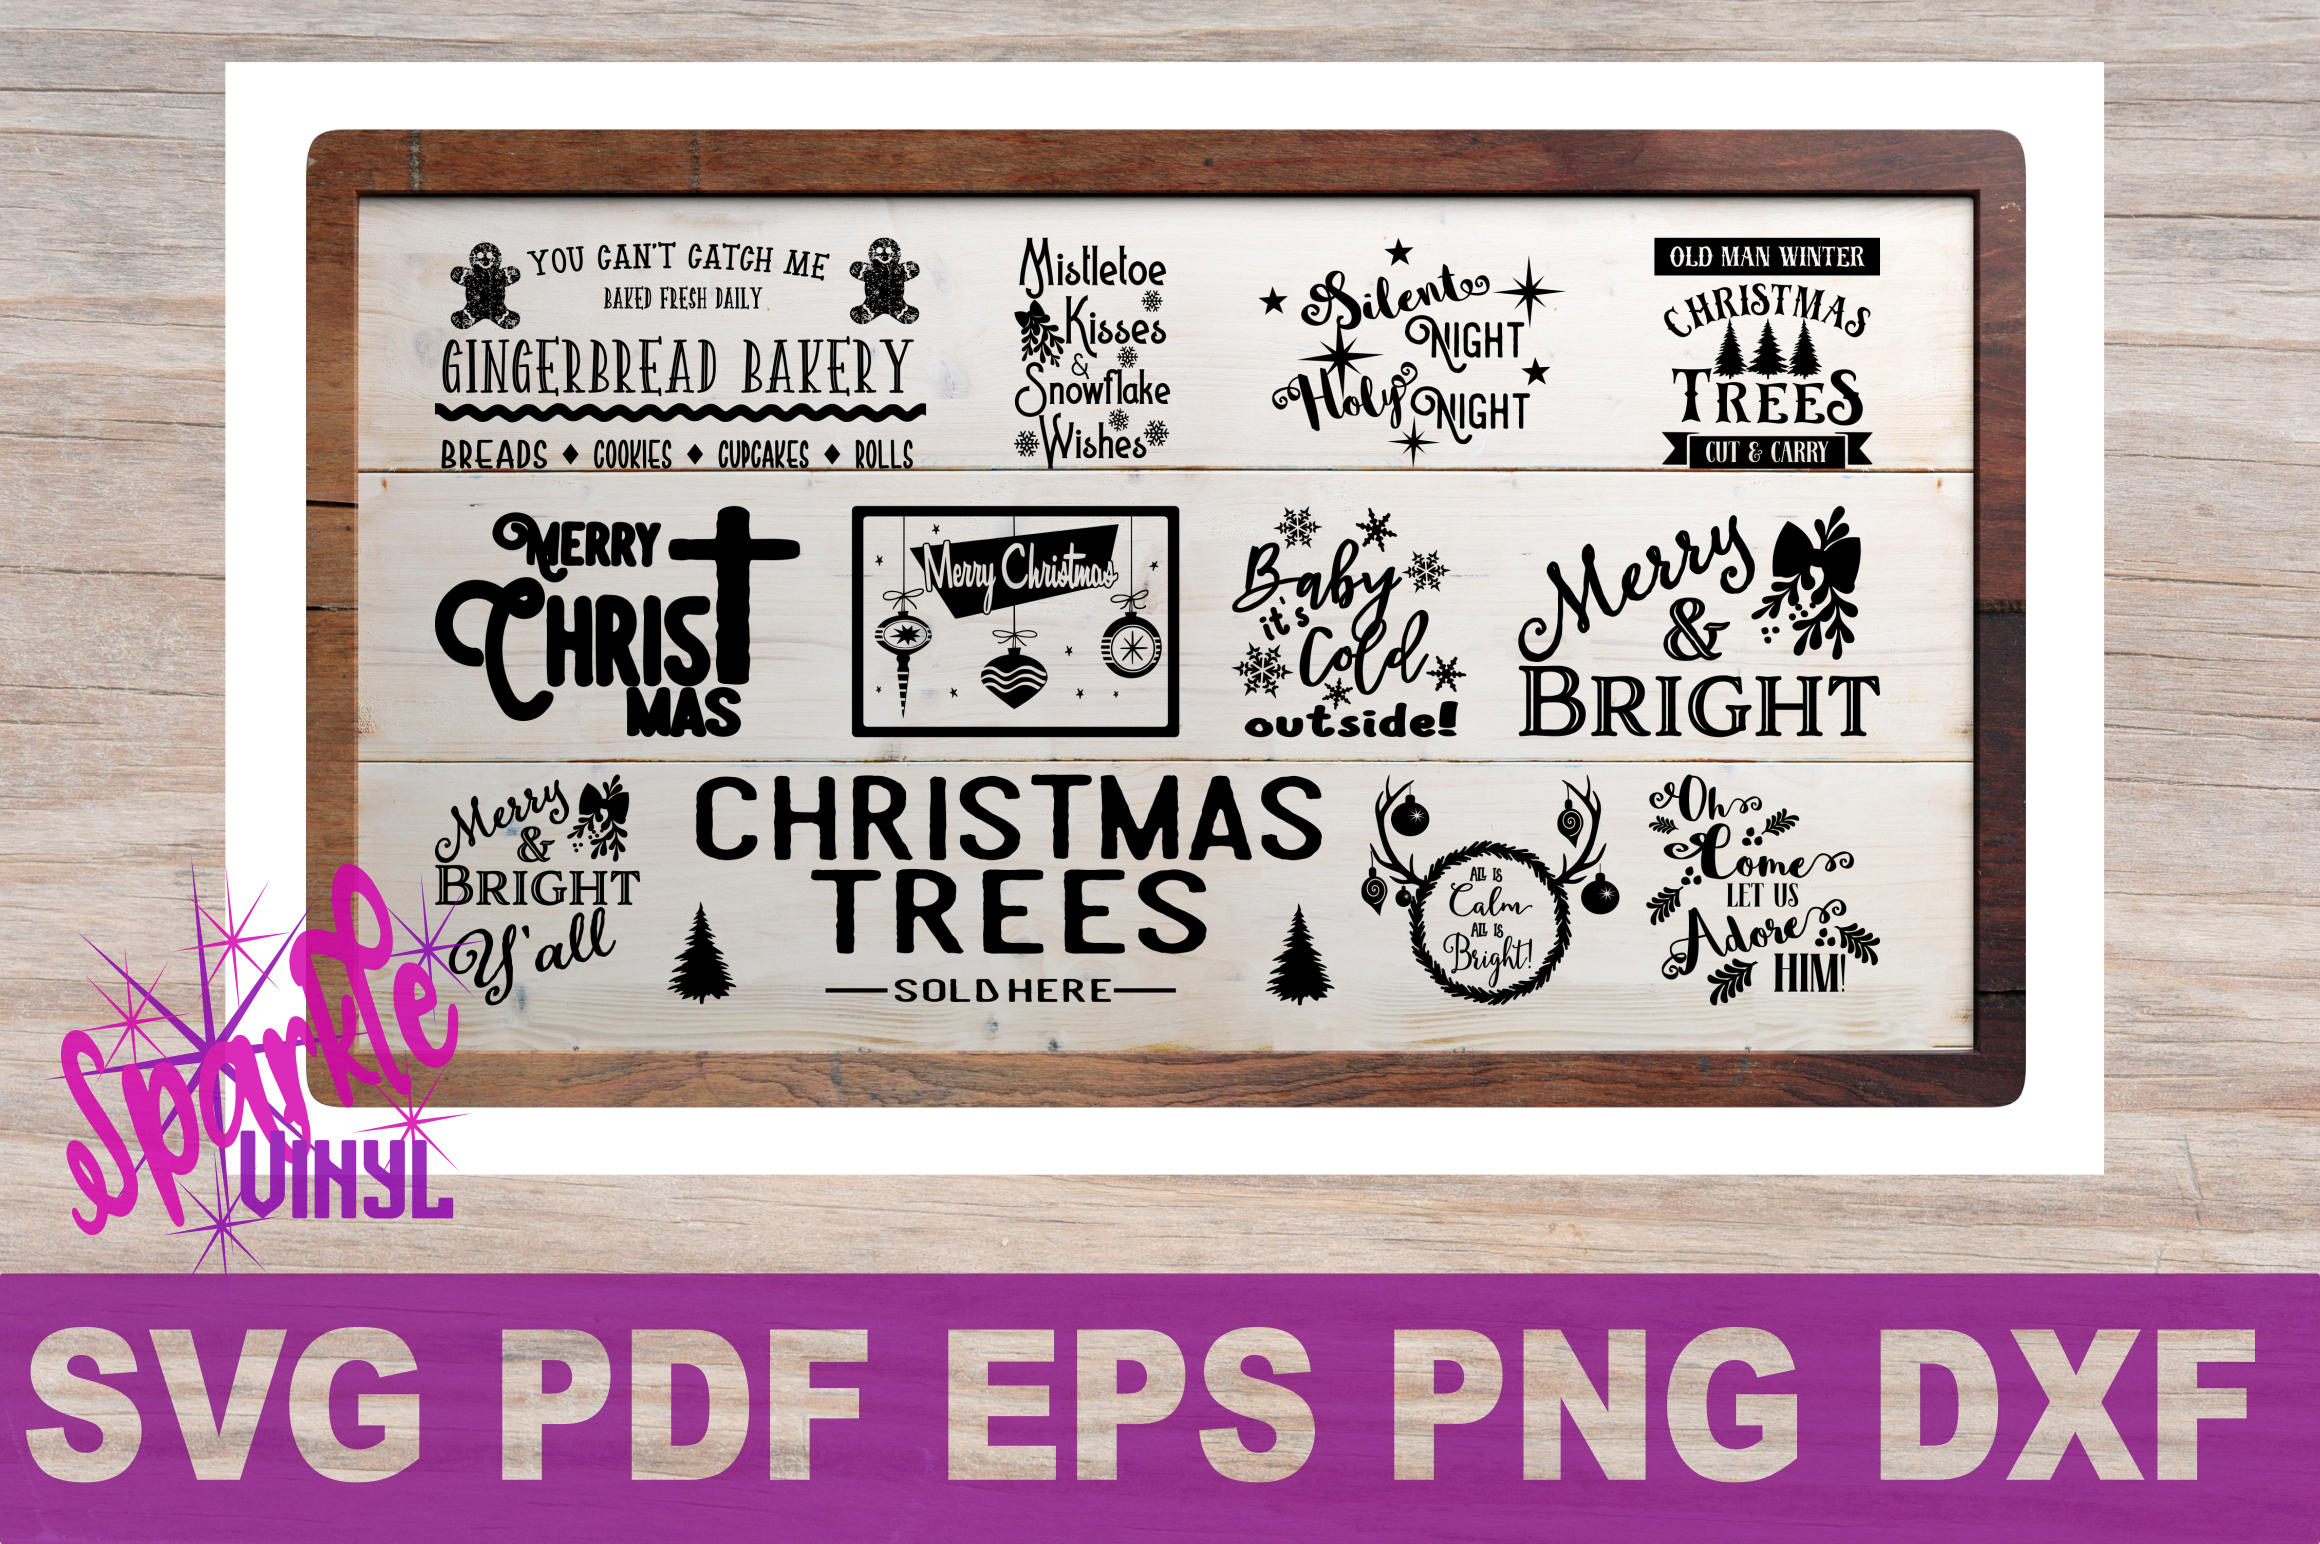 Svg Christmas Sign Stencil Bundle printable svg dxf png pdf esp files for cricut or silhouette Merry Christmas Trees Sold here Mistletoe svg example image 1